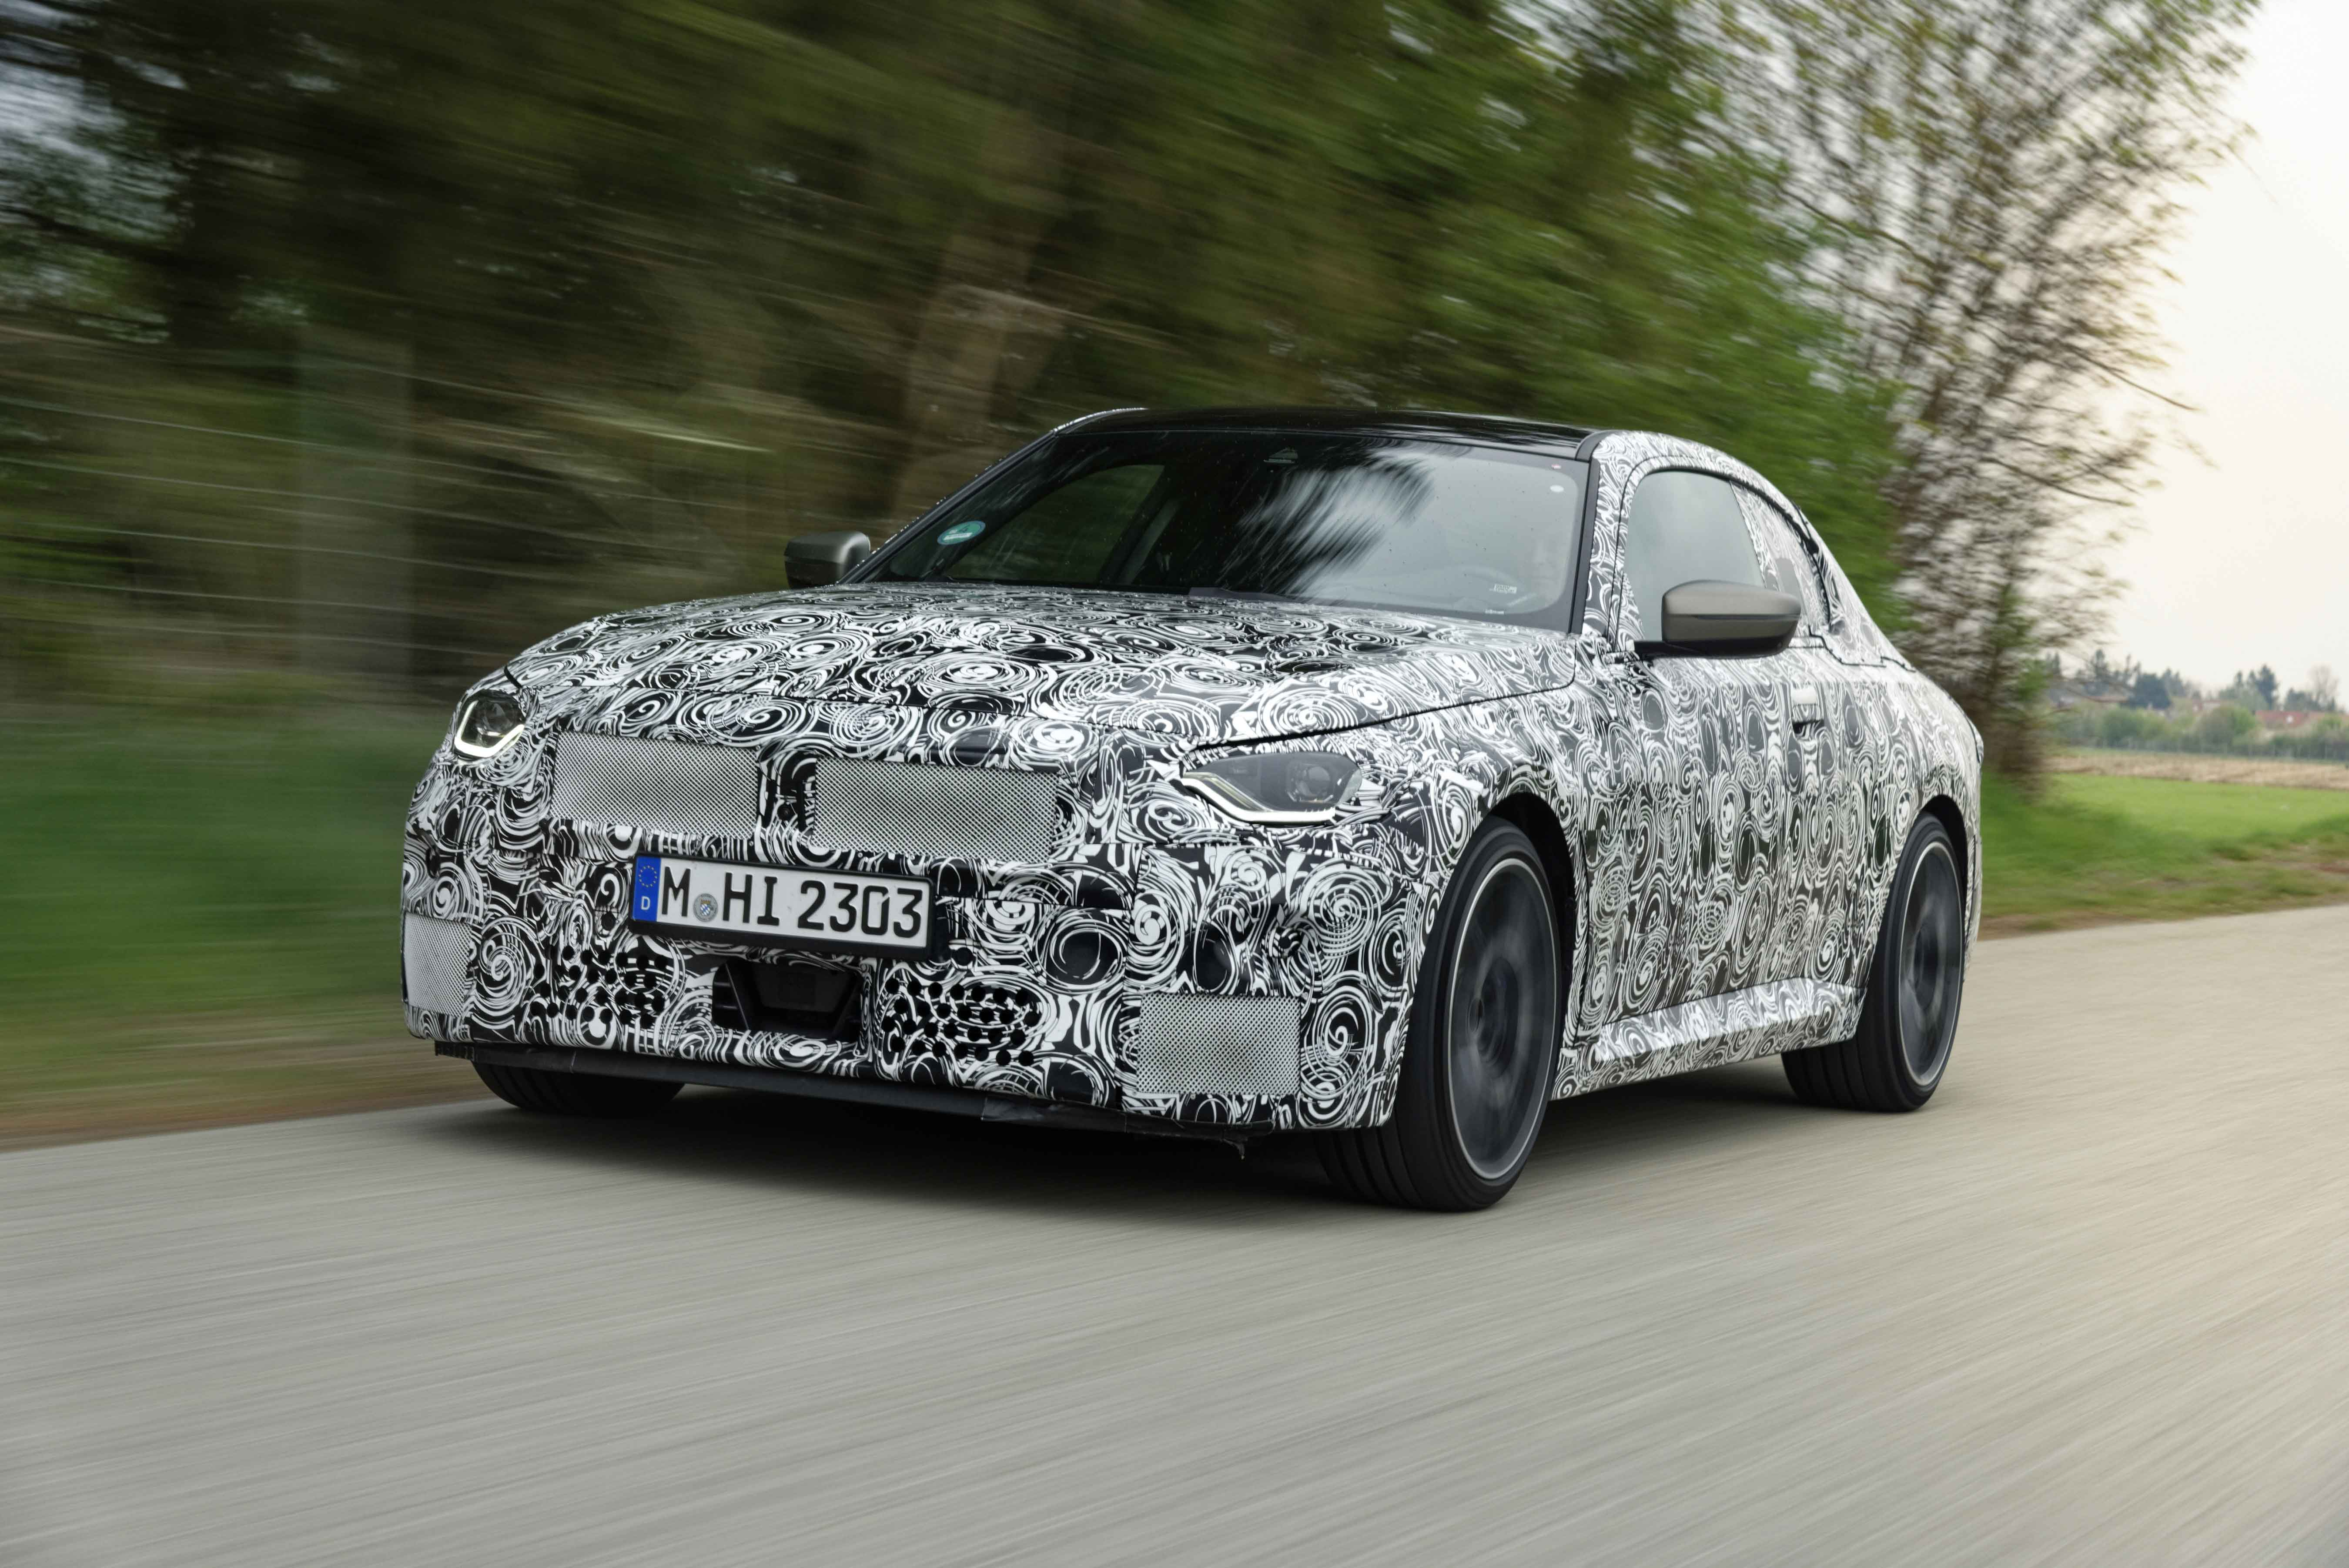 On the final straight to unique driving dynamics The new BMW 2 Series Coupé.